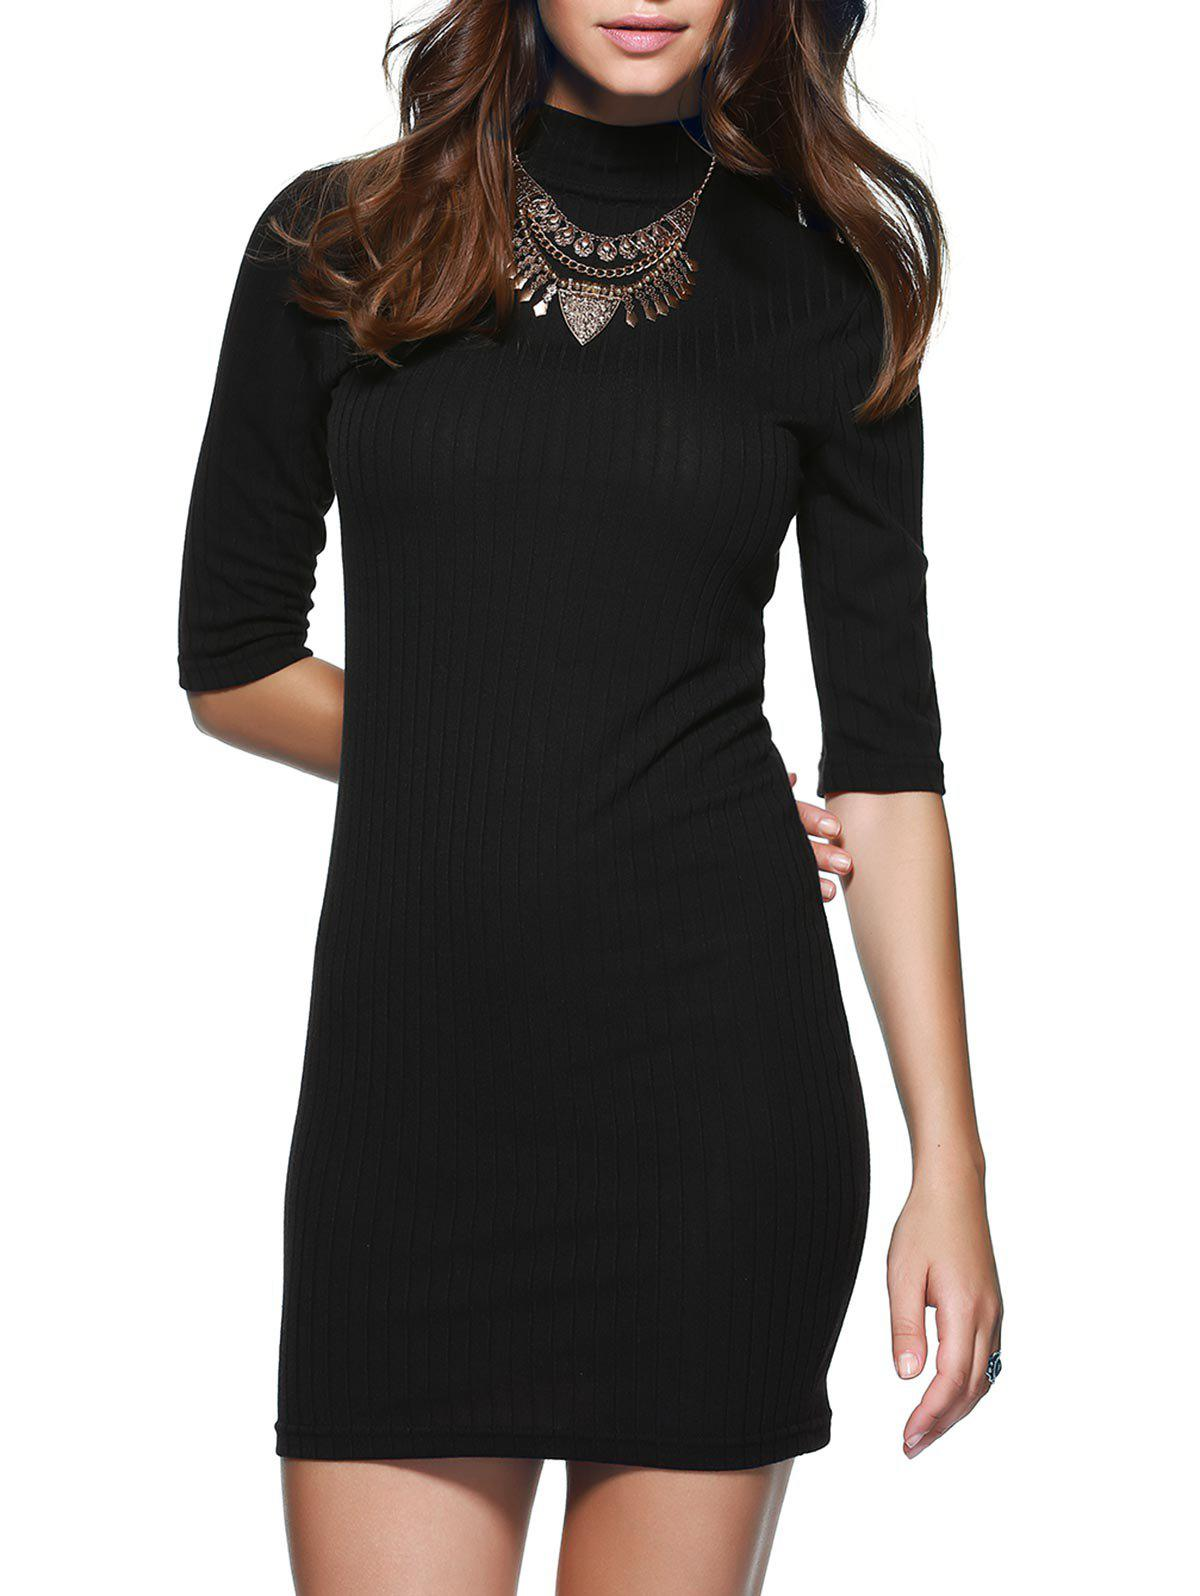 Round Neck 1/2 Sleeve Skinny Sweater Dress - BLACK XL